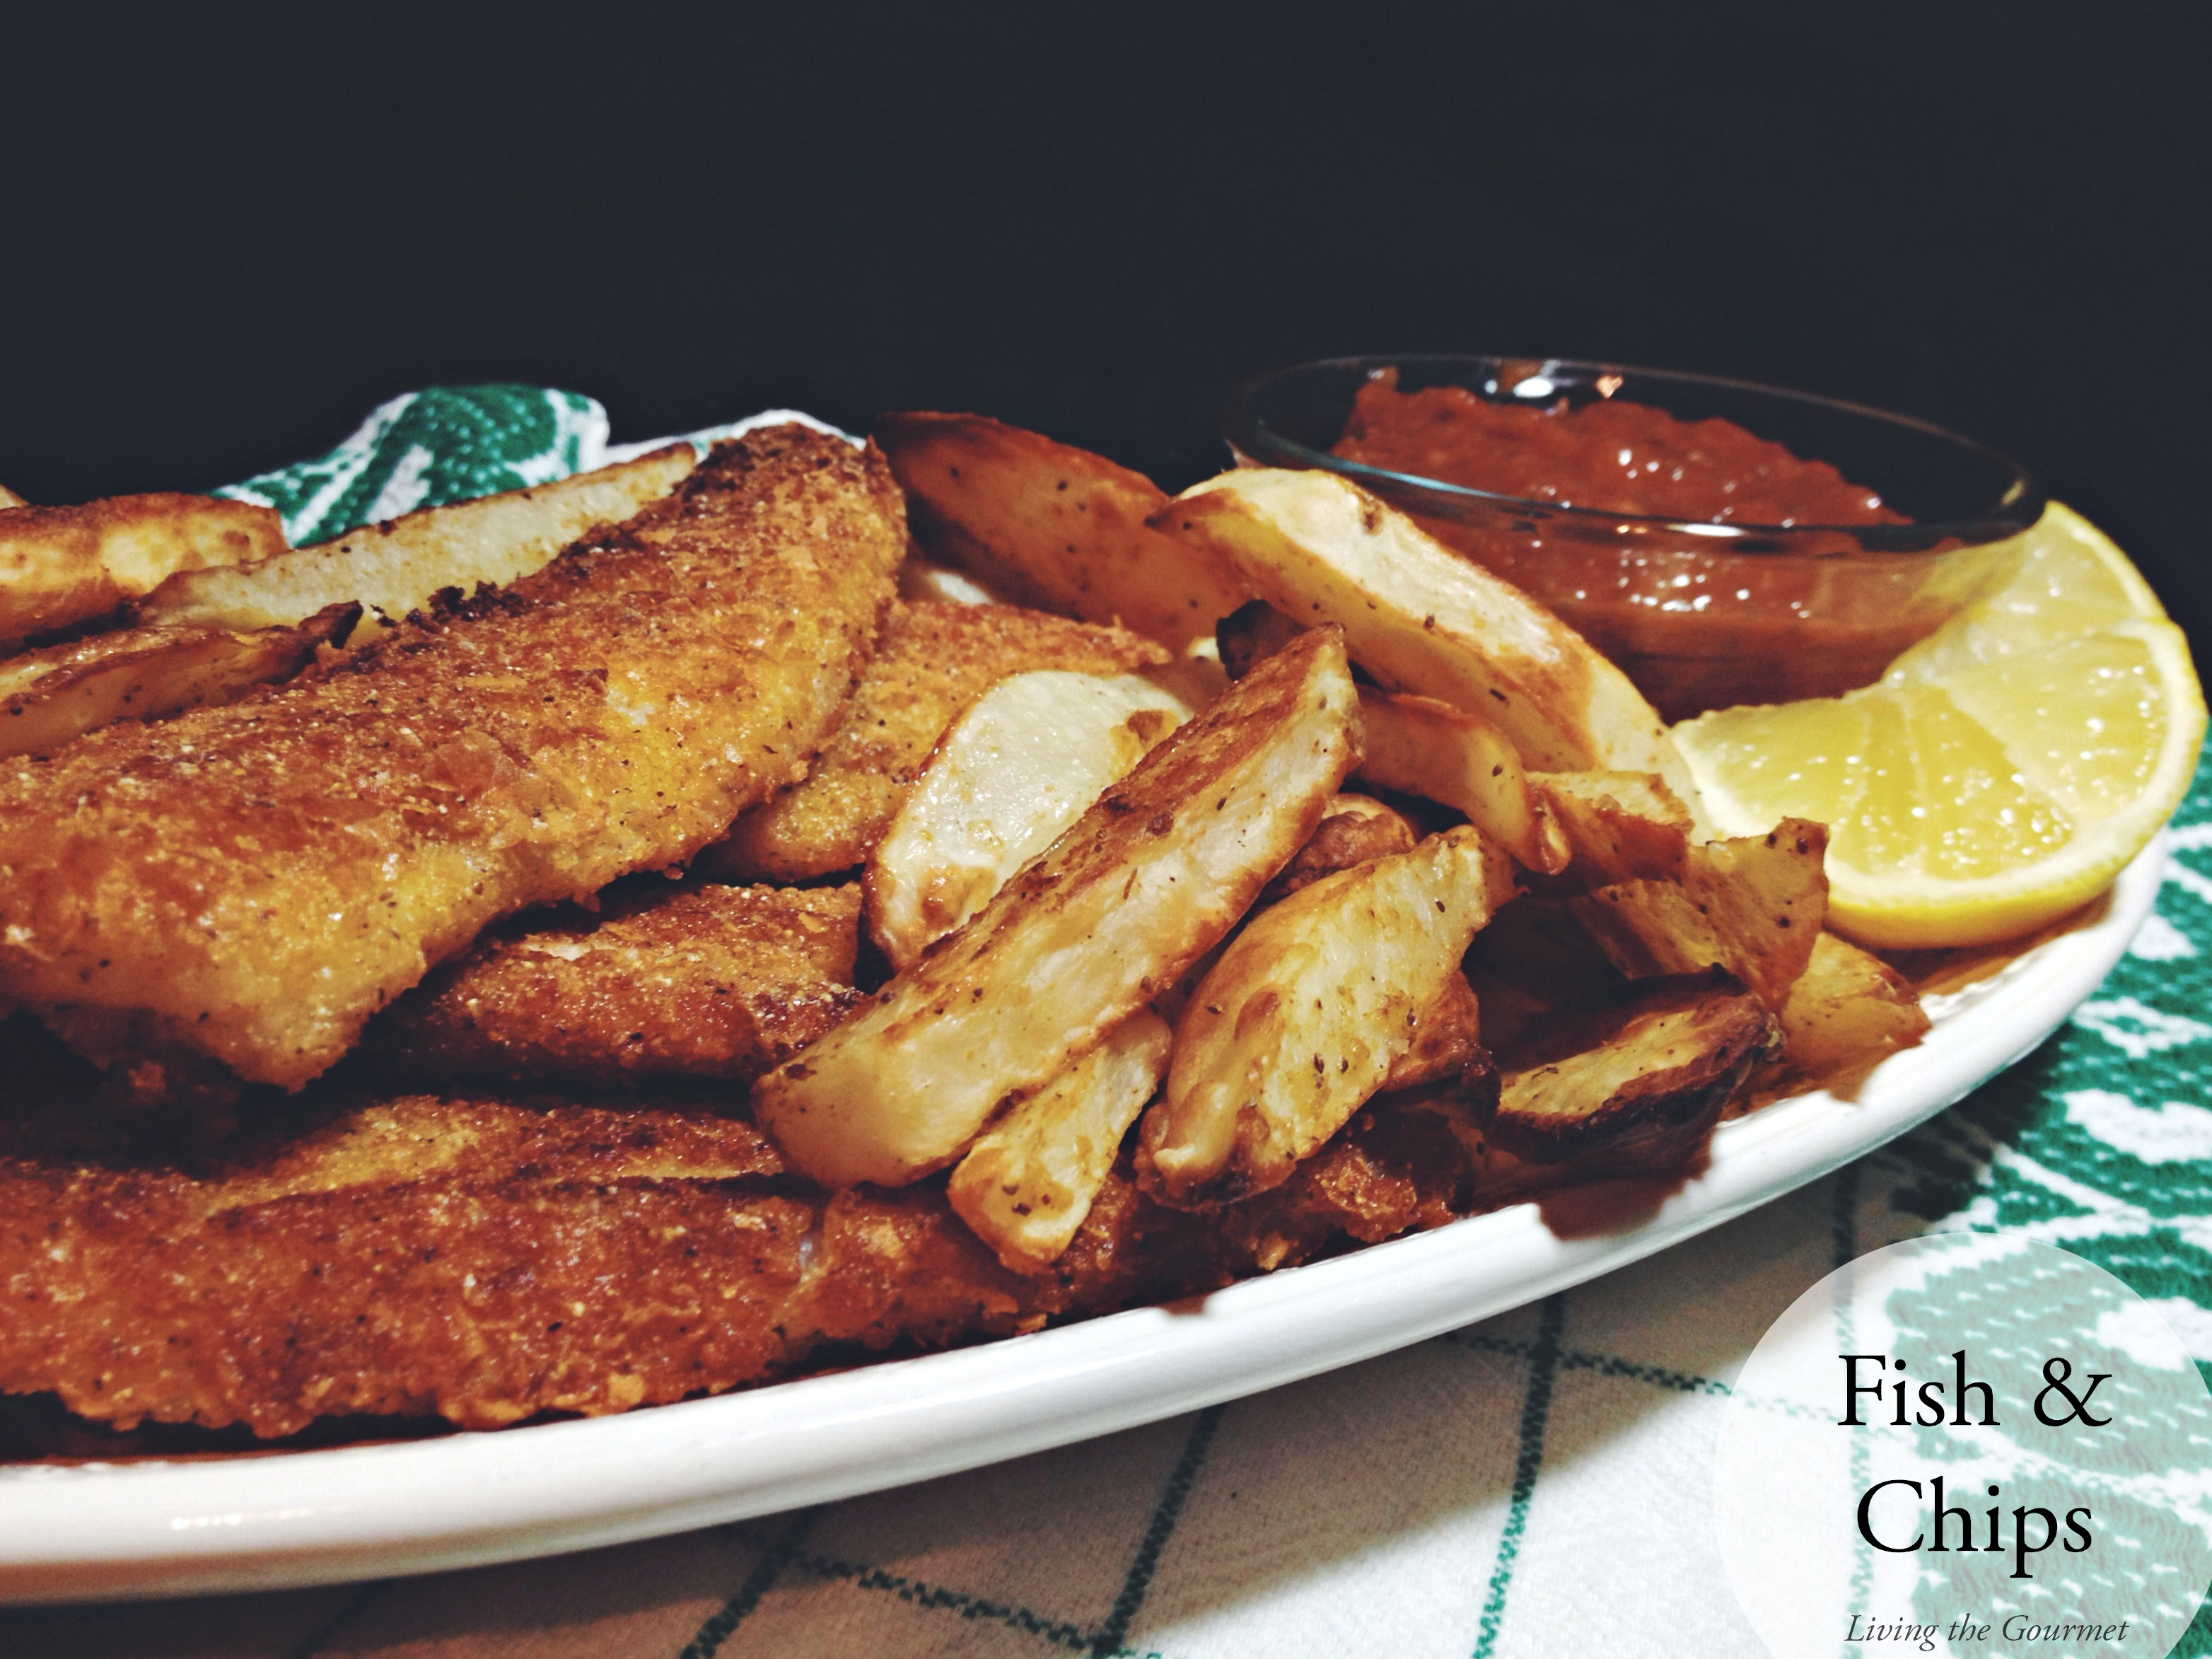 Living the Gourmet: Fish and Chips